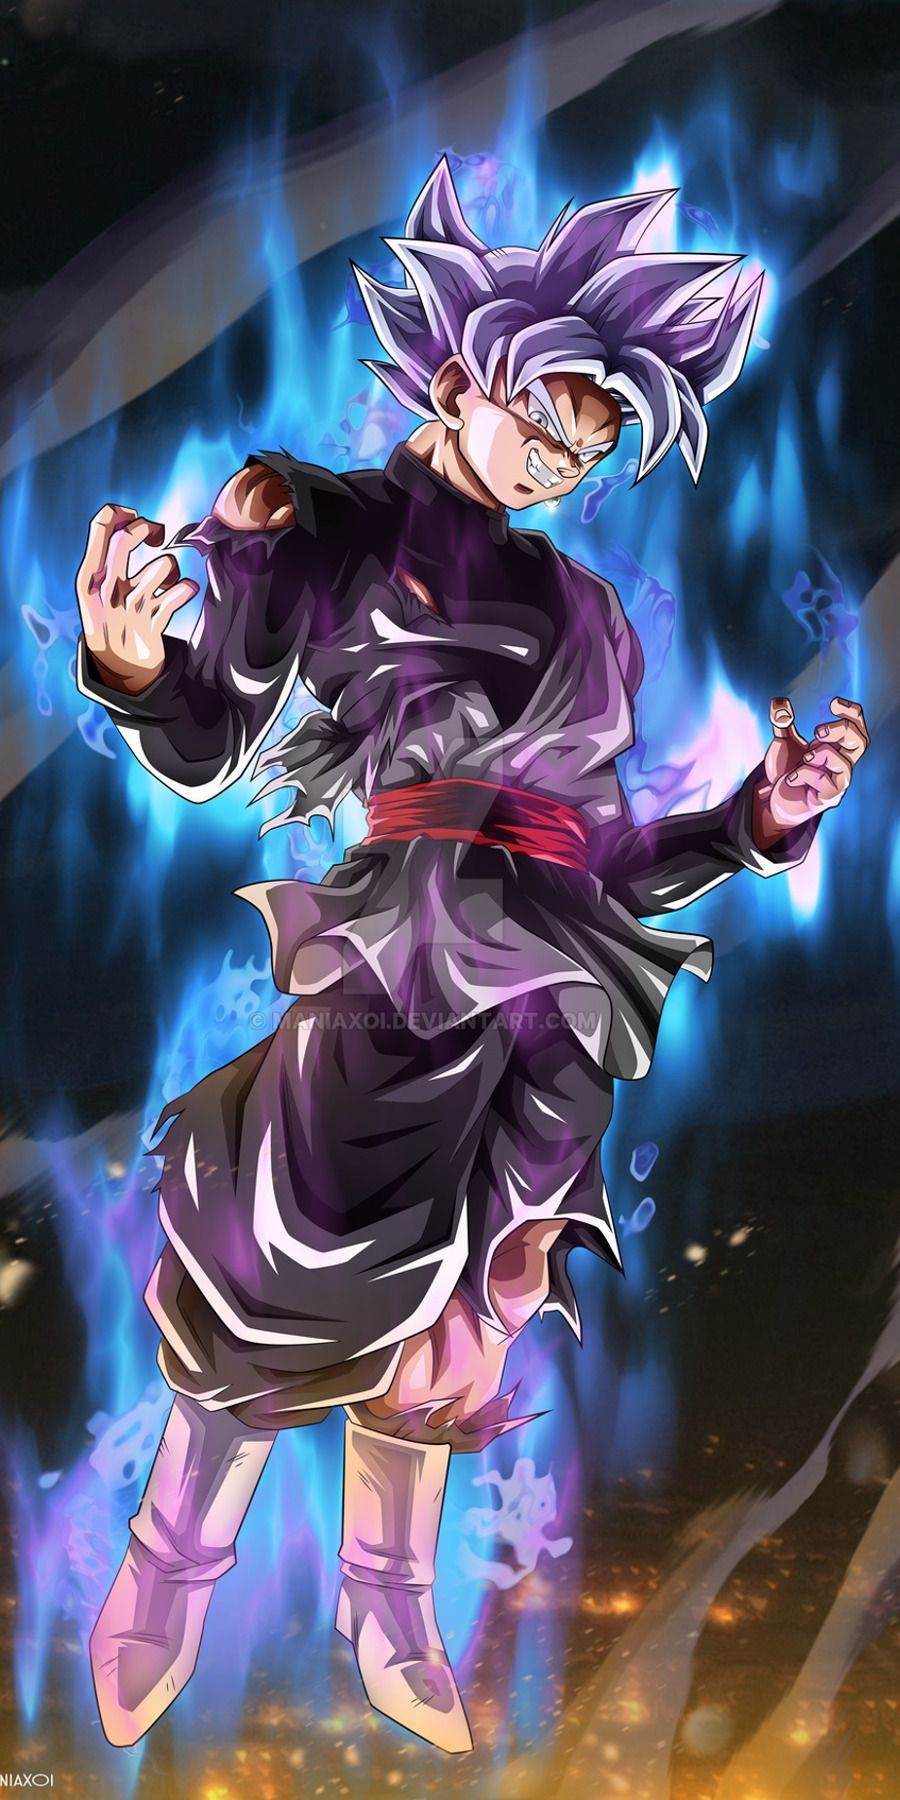 Goku Black [900x1800] live wallpaper in comments Download at: http://